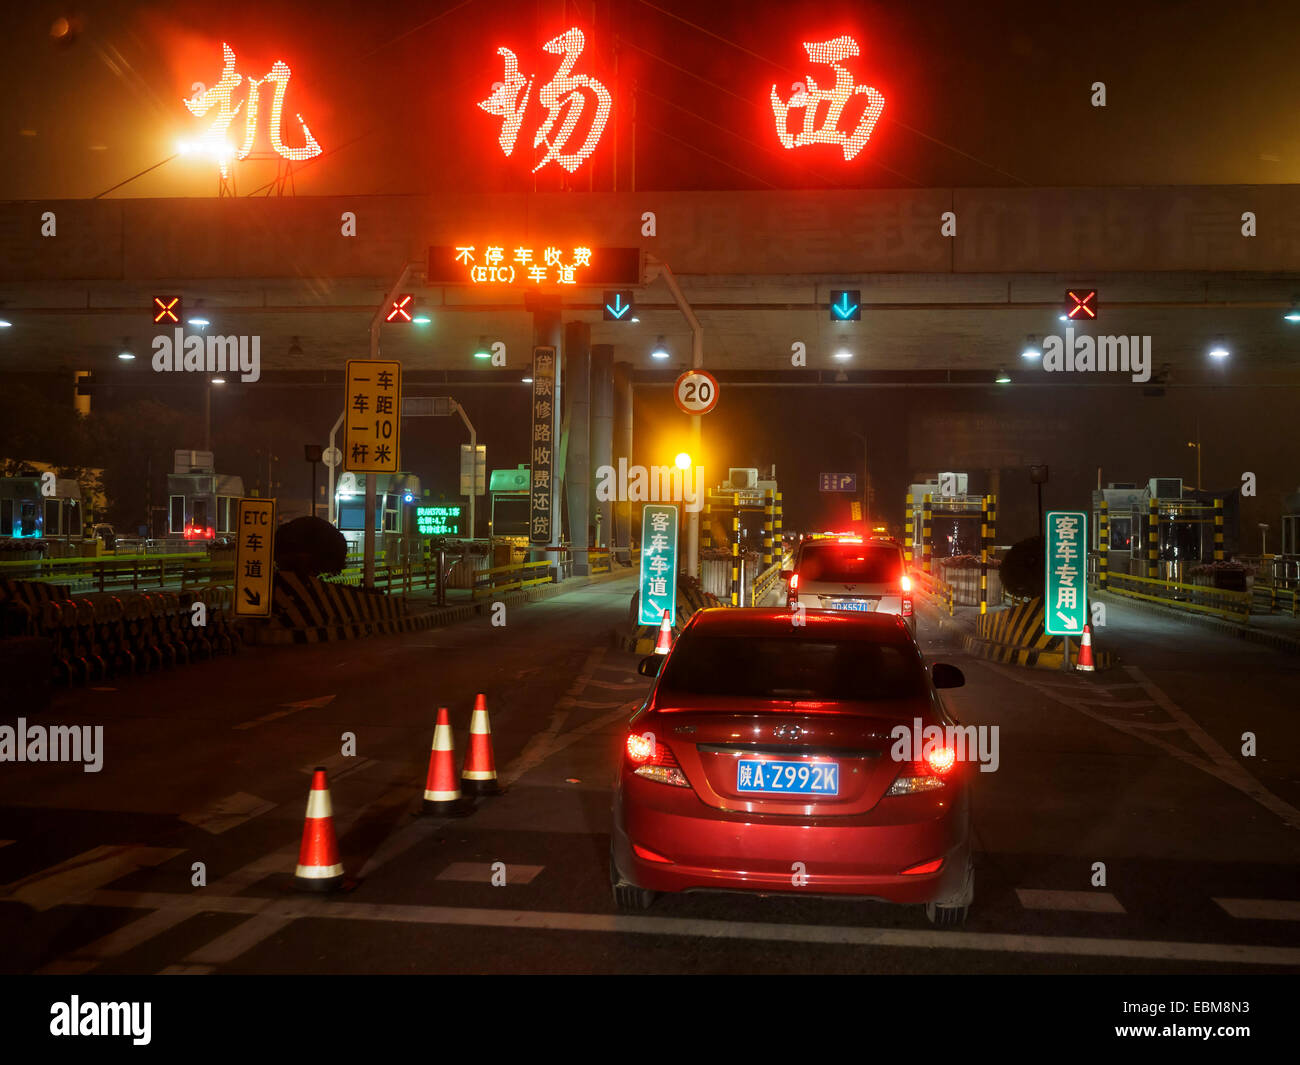 Road toll booths in China - Stock Image